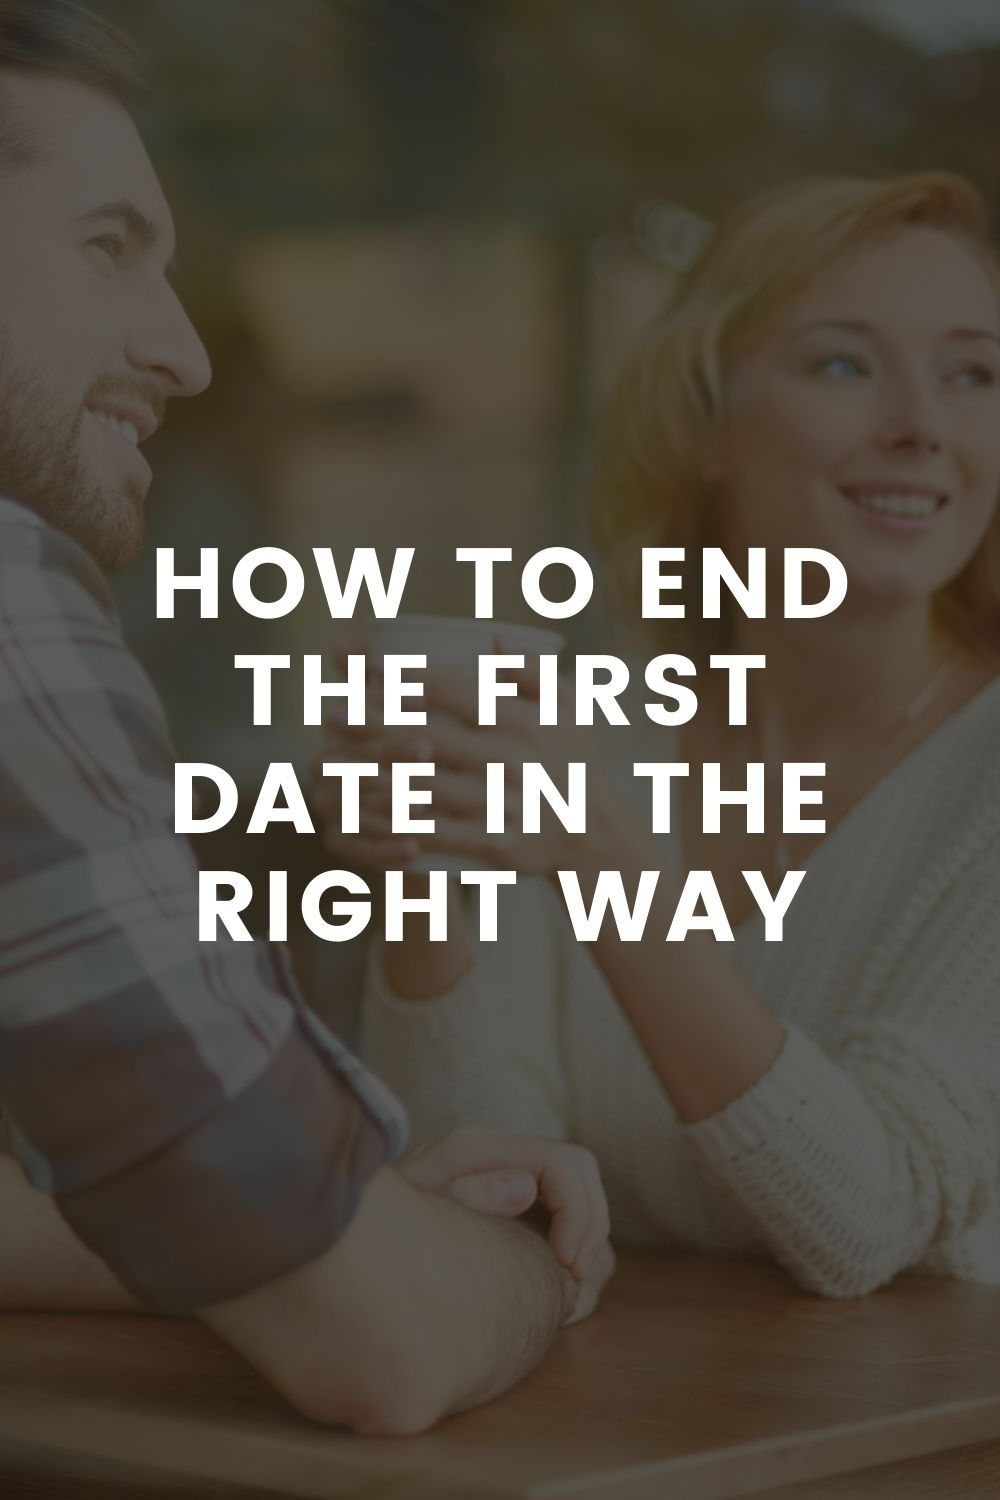 How to End the First Date in the Right Way